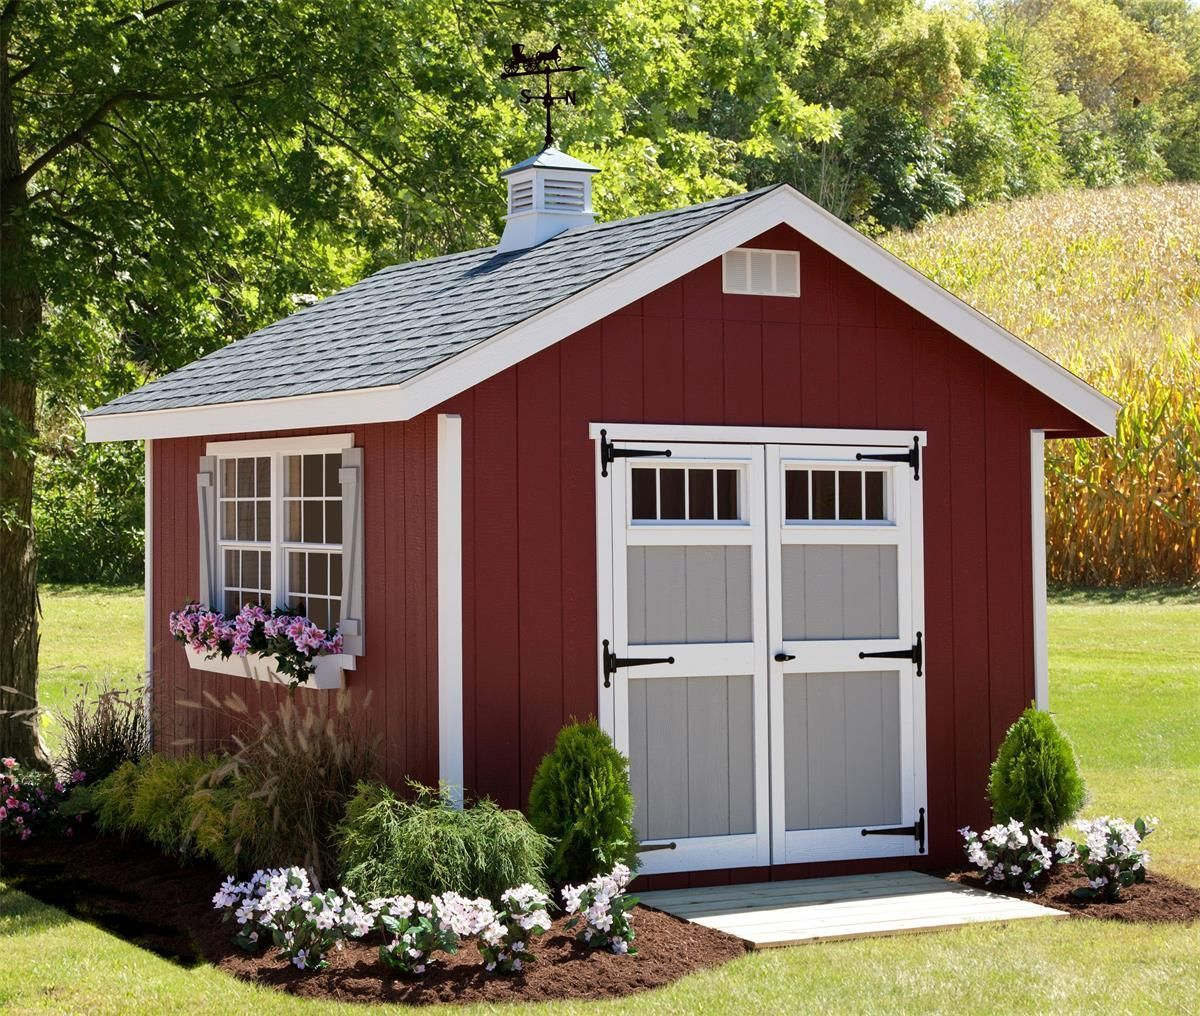 Pin On Build Your Own Shed Plans